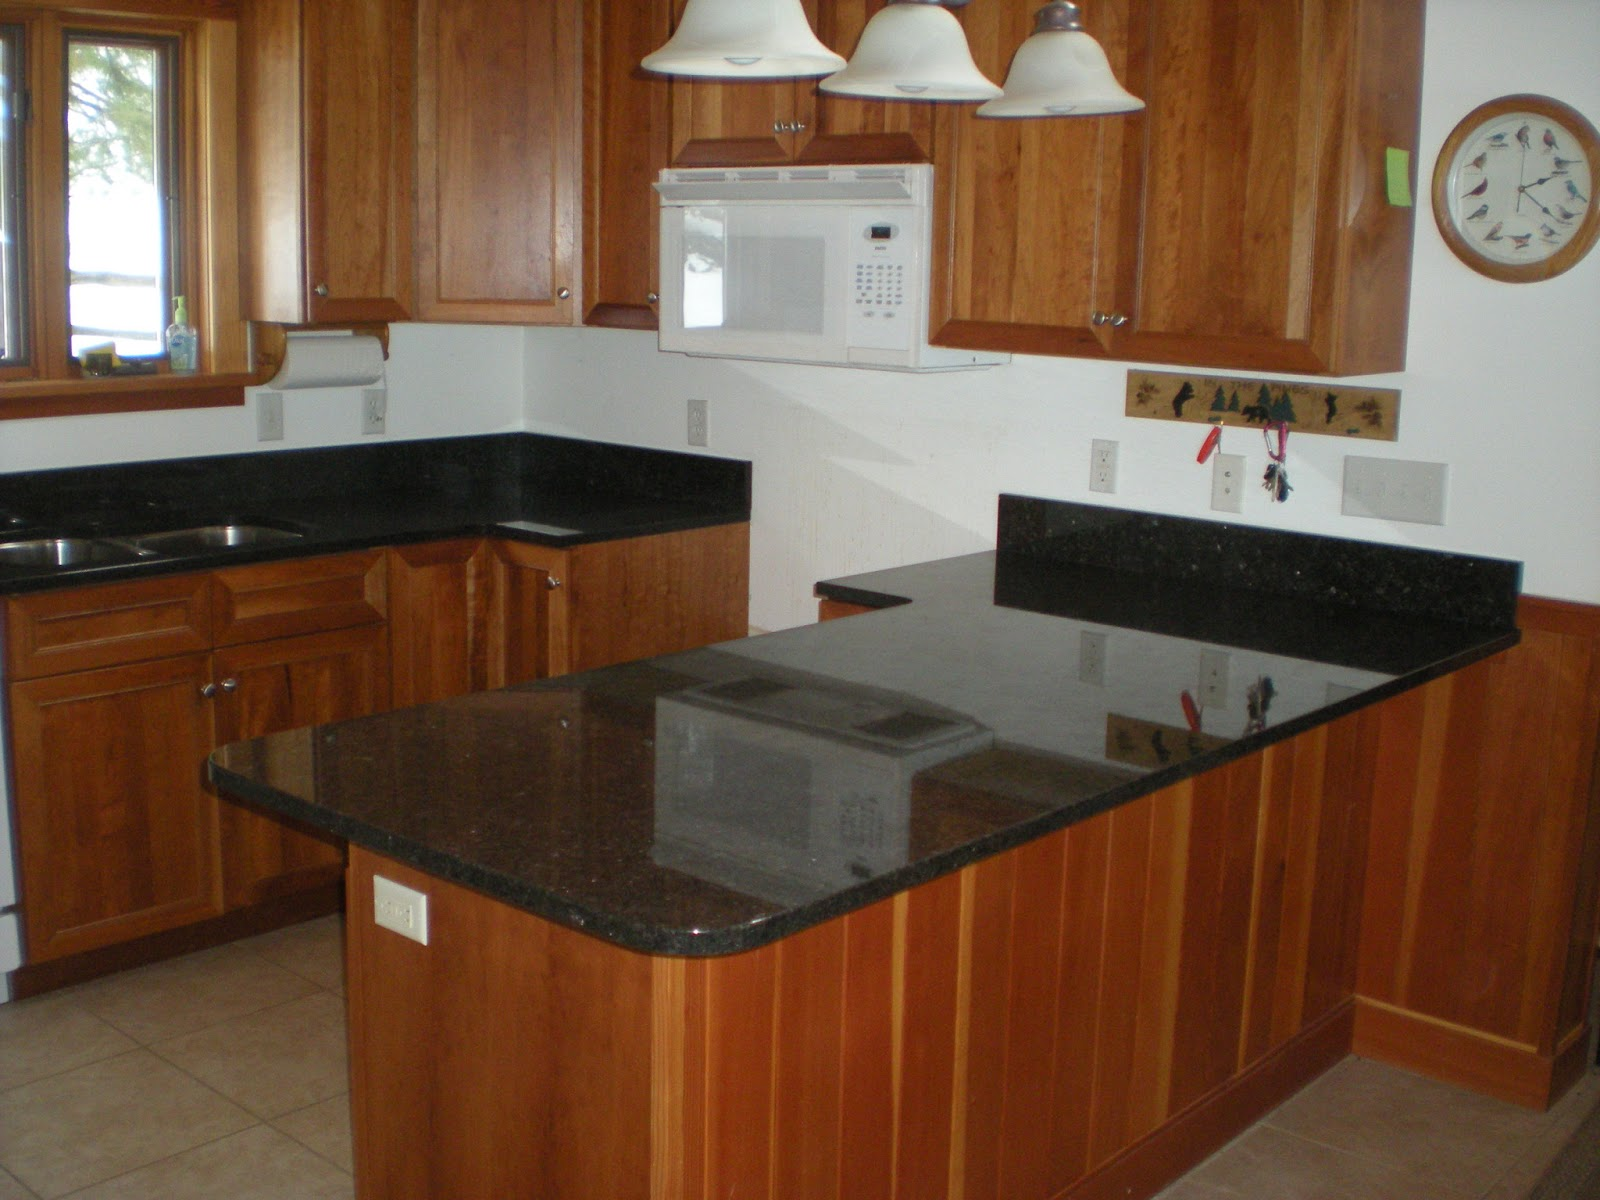 Black Granite Countertops : mesabi black granite countertops, http://huismanconcepts.com/